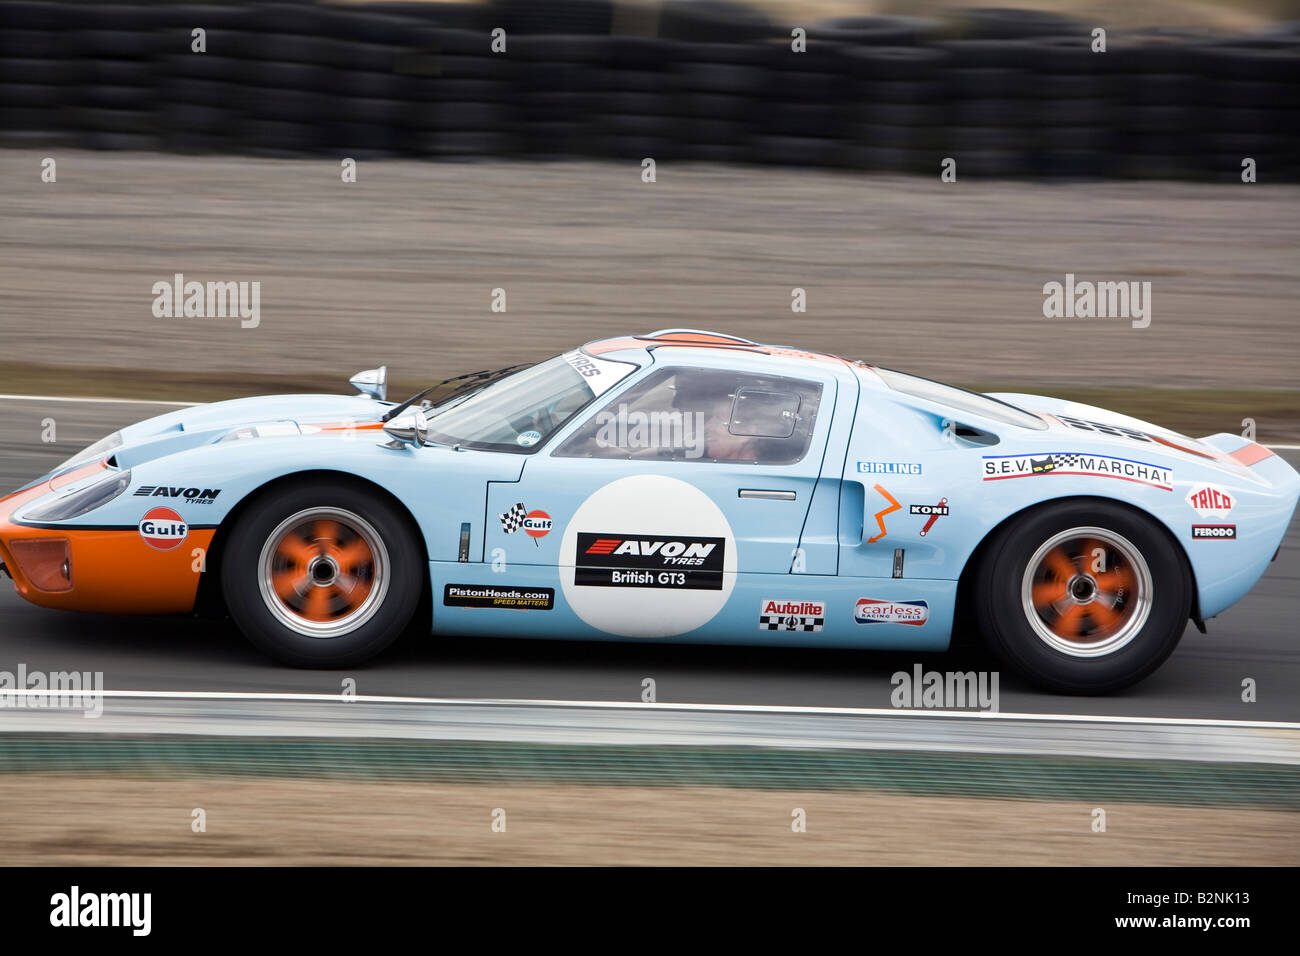 Ford Gt Continuation Gtp  Gulf Racing Livery Knockhill Racing Circuit Fife Scotland